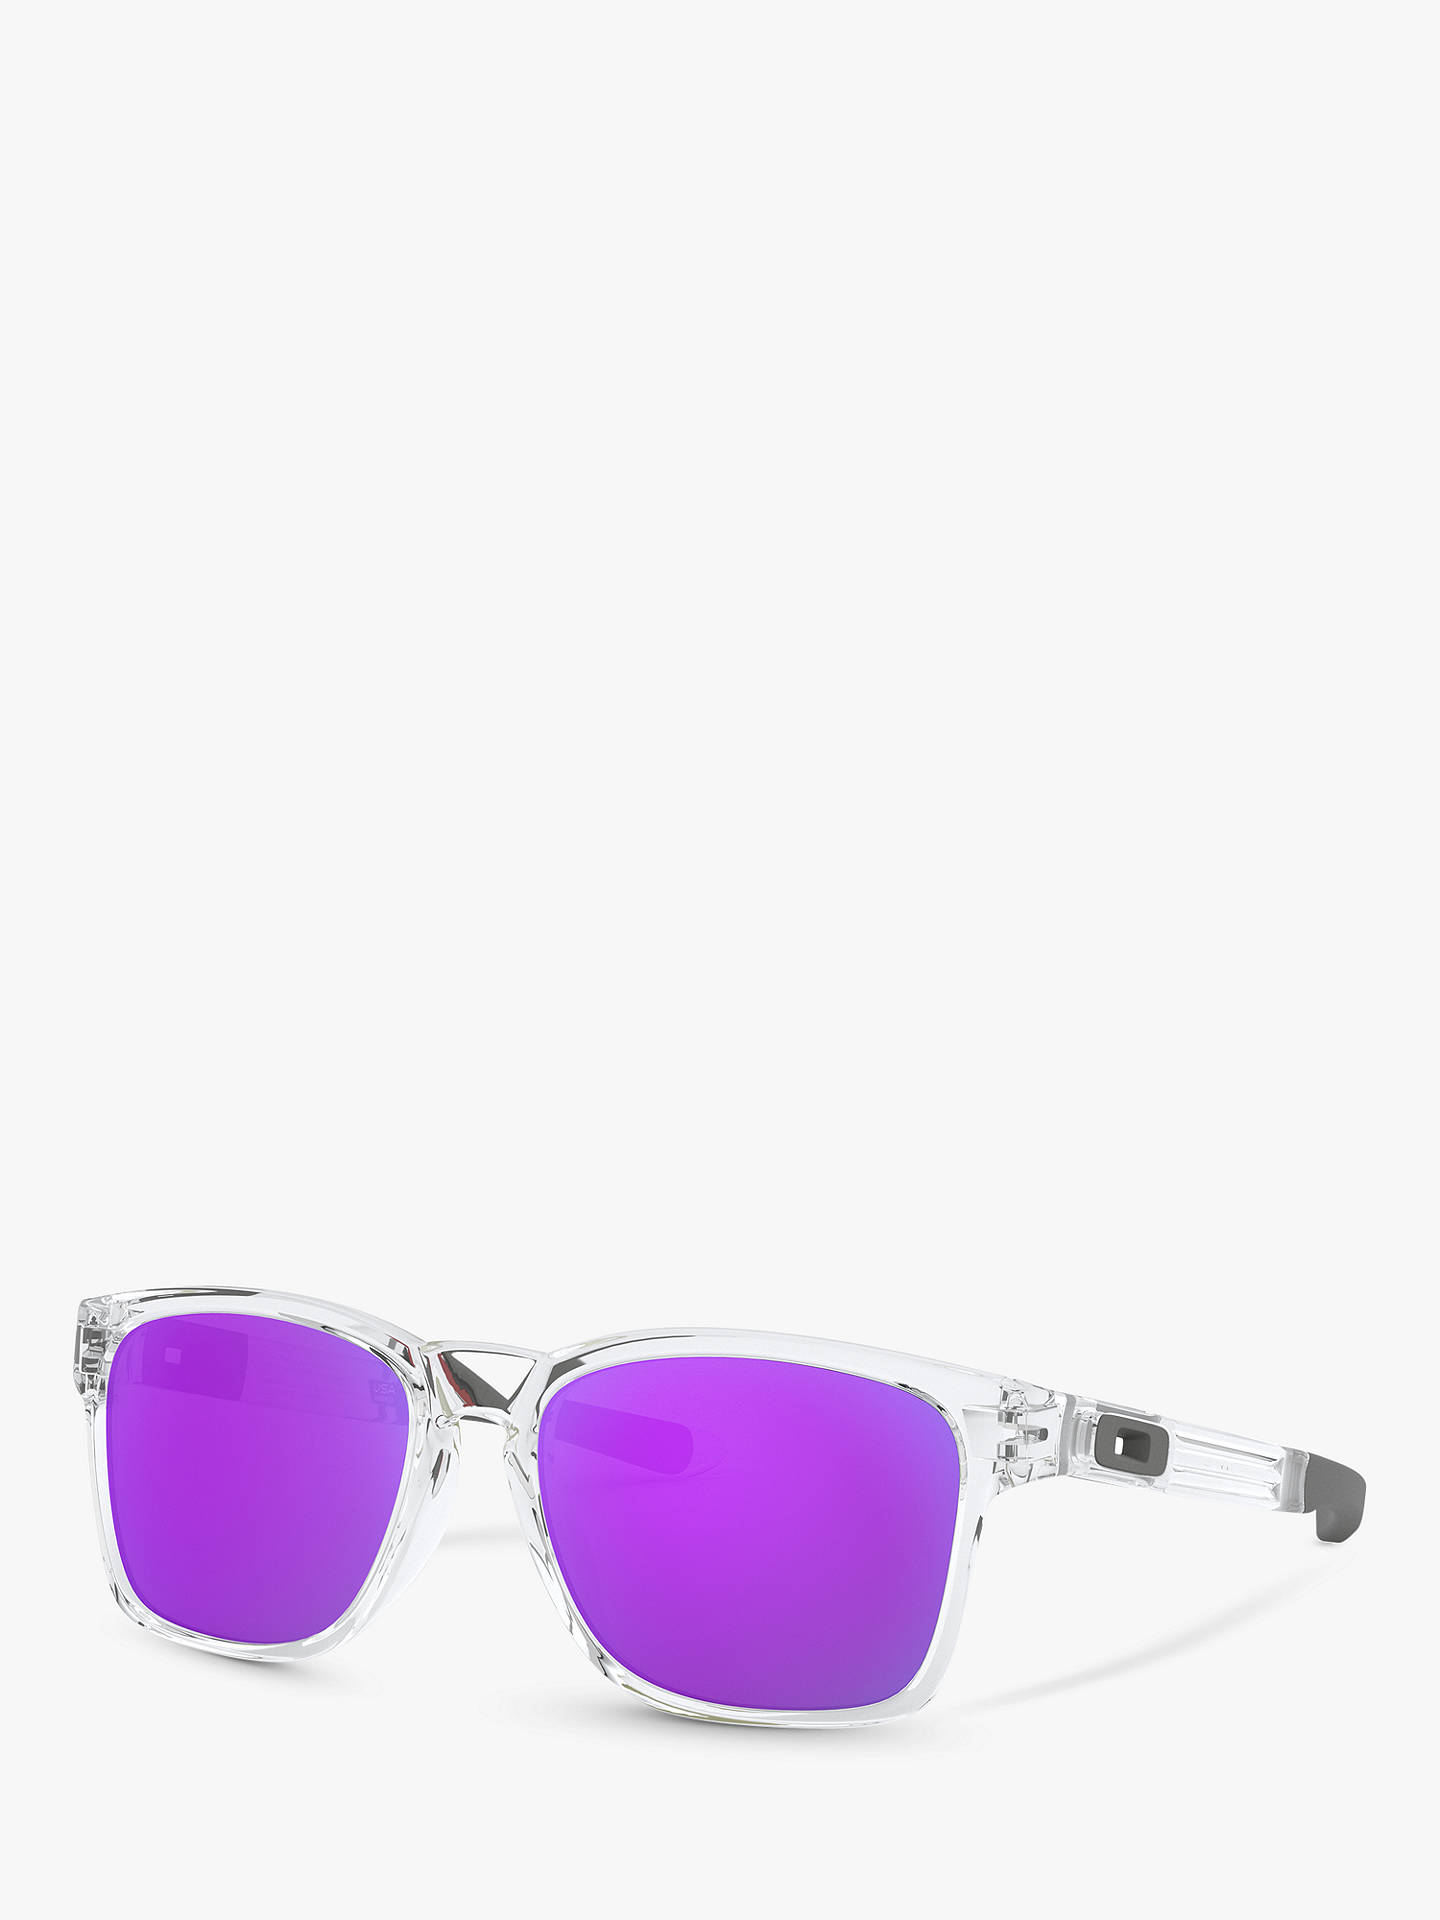 Buy Oakley OO9272 Catalyst Rectangular Sunglasses, Purple Online at johnlewis.com